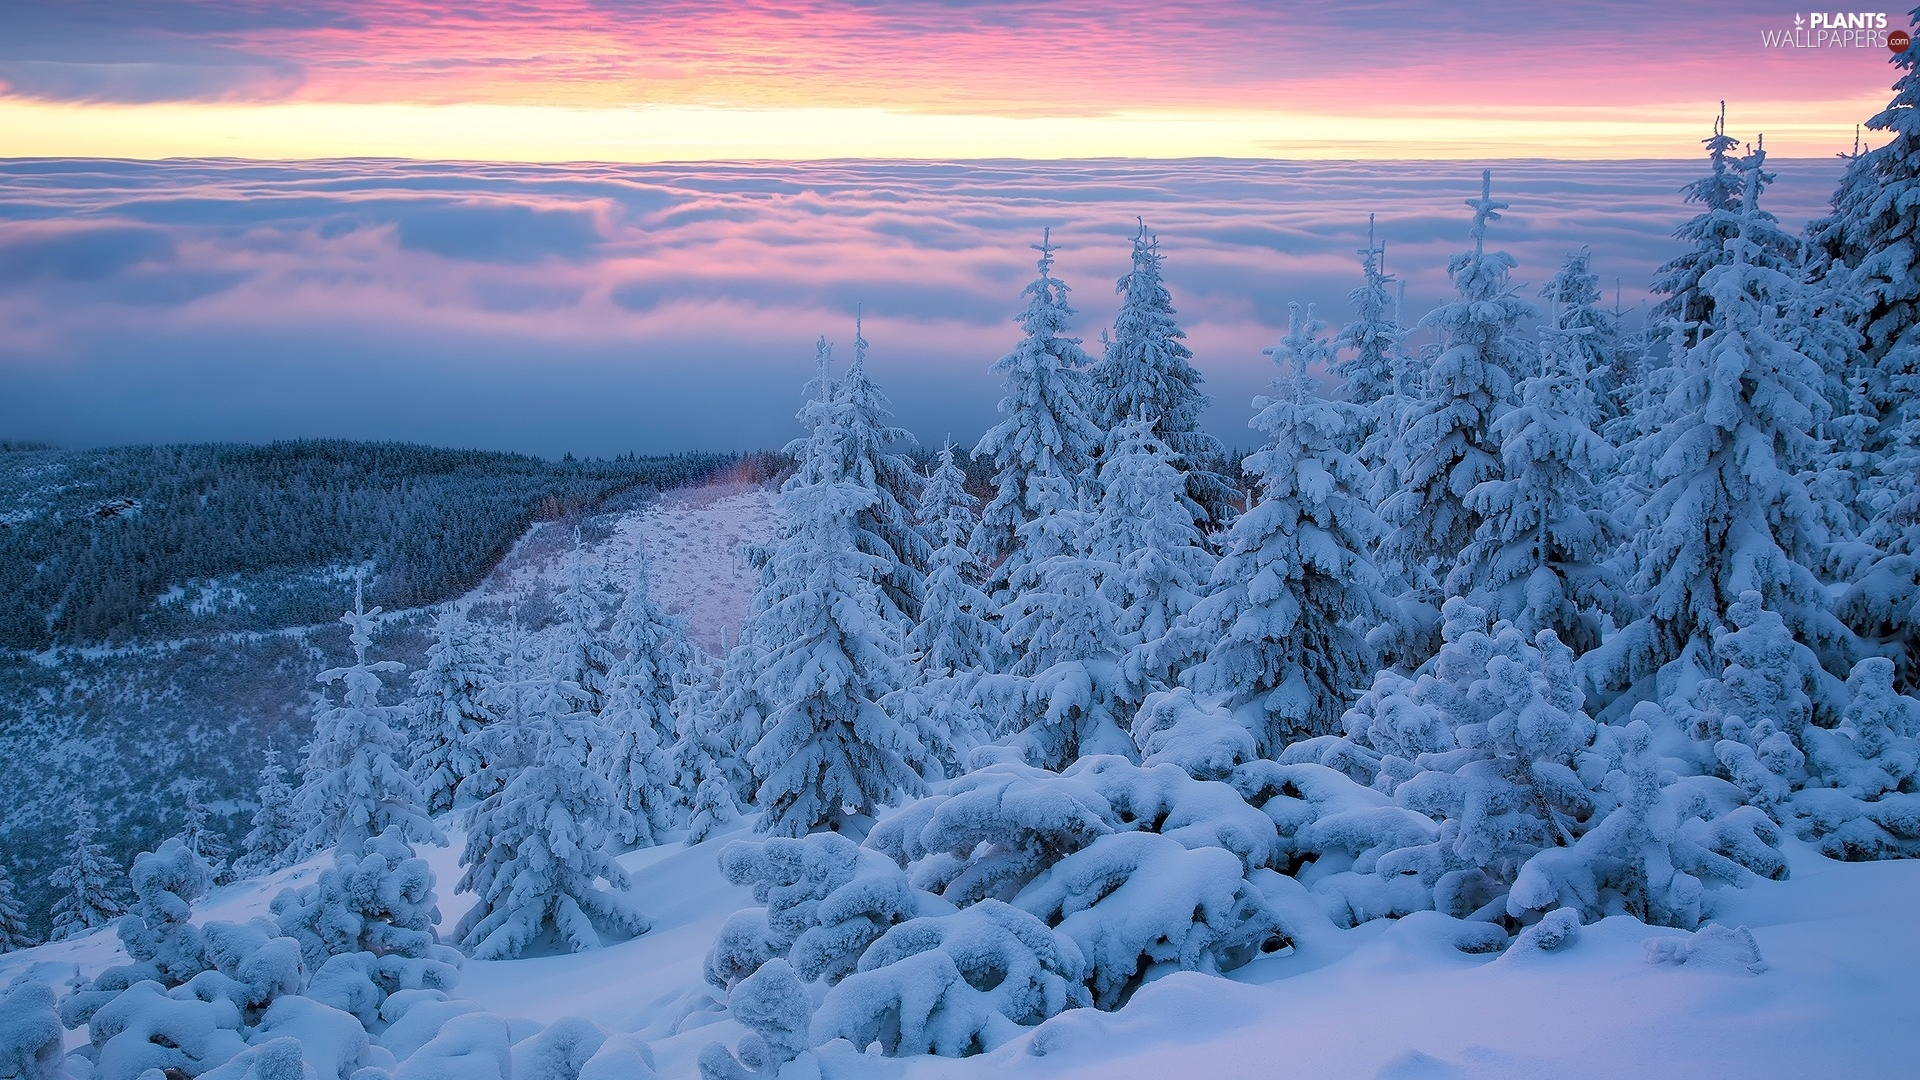 snow, winter, Sunrise, trees, Giant Mountains, Poland, Spruces, Mountains, viewes